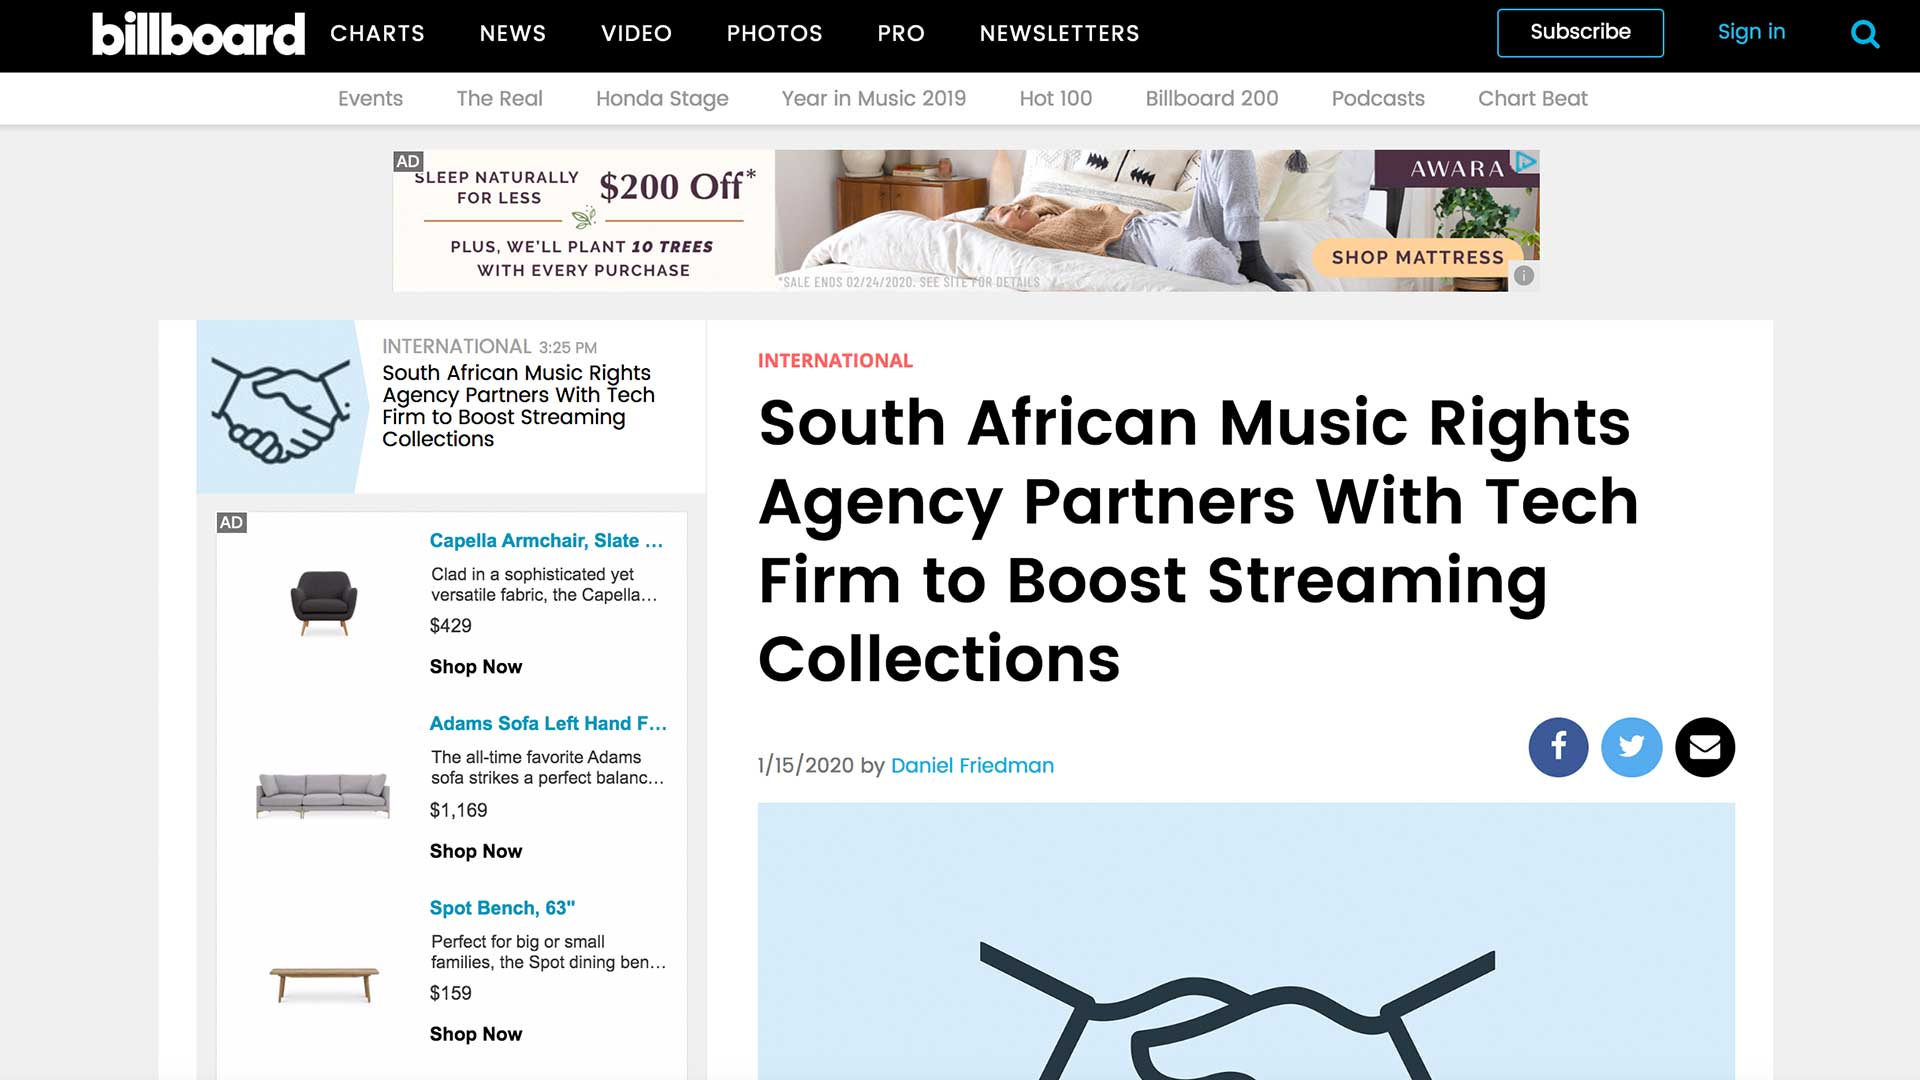 Fairness Rocks News South African Music Rights Agency Partners With Tech Firm to Boost Streaming Collections